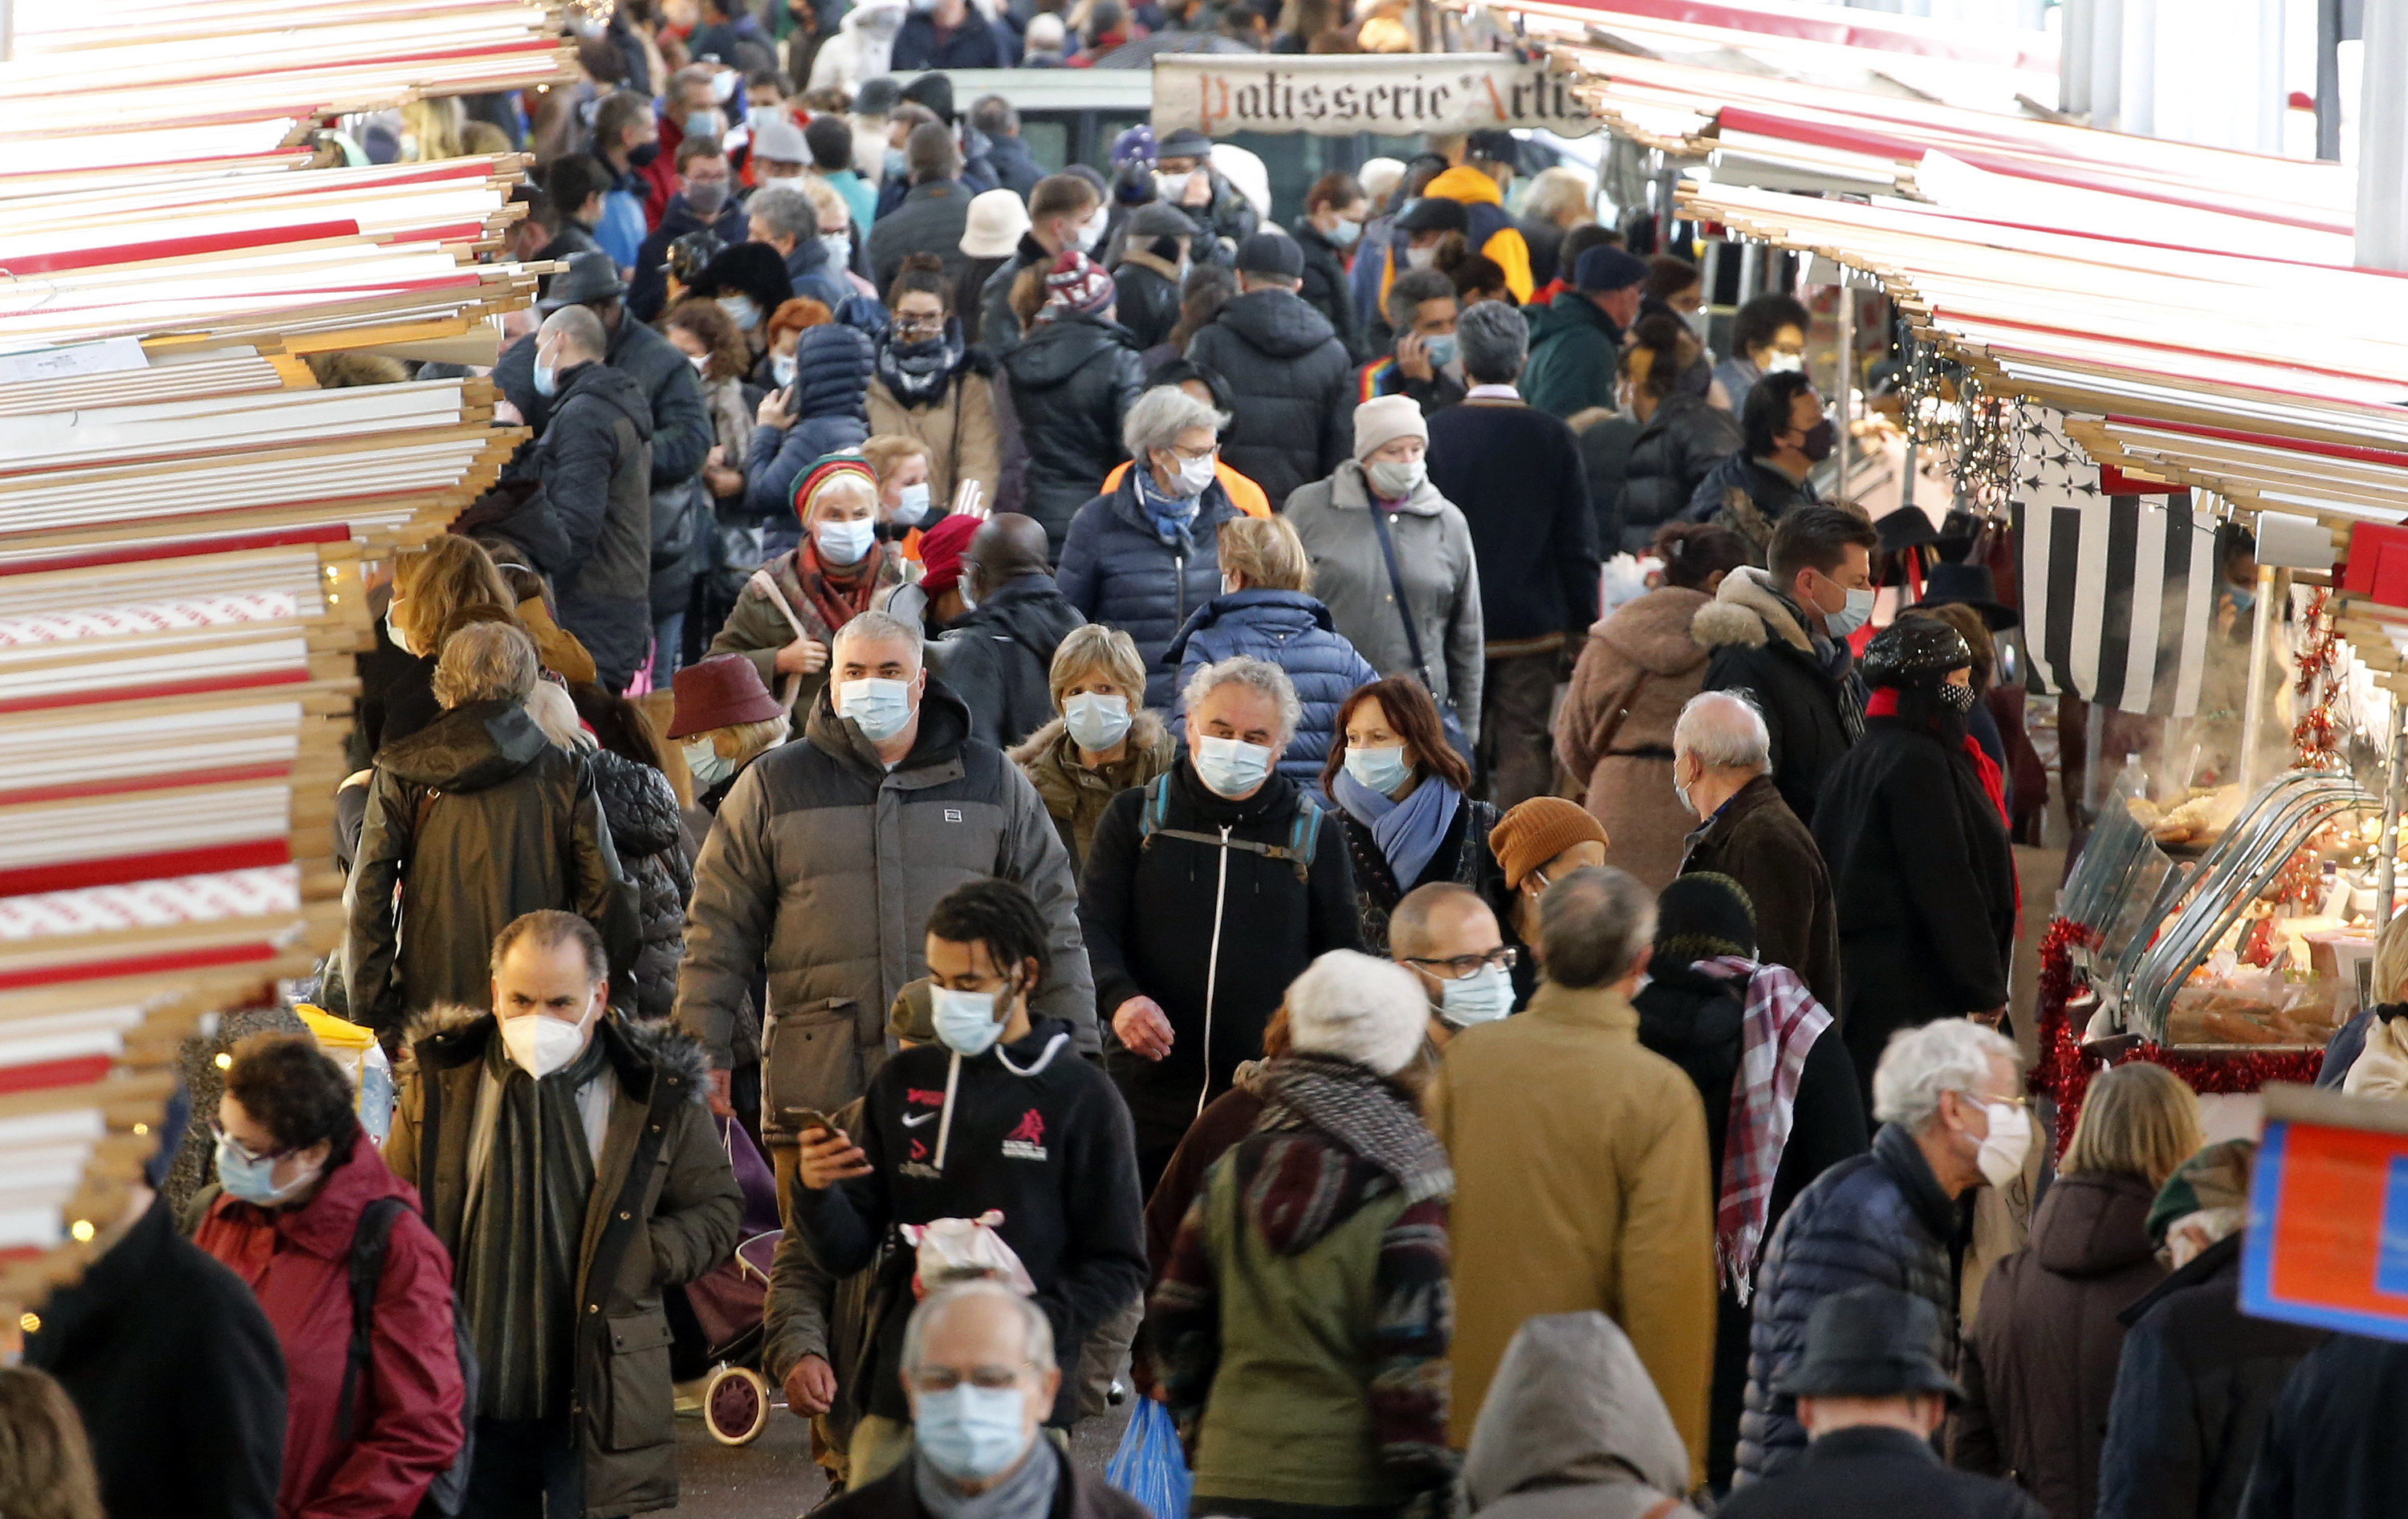 A crowd of people walk with face masks on